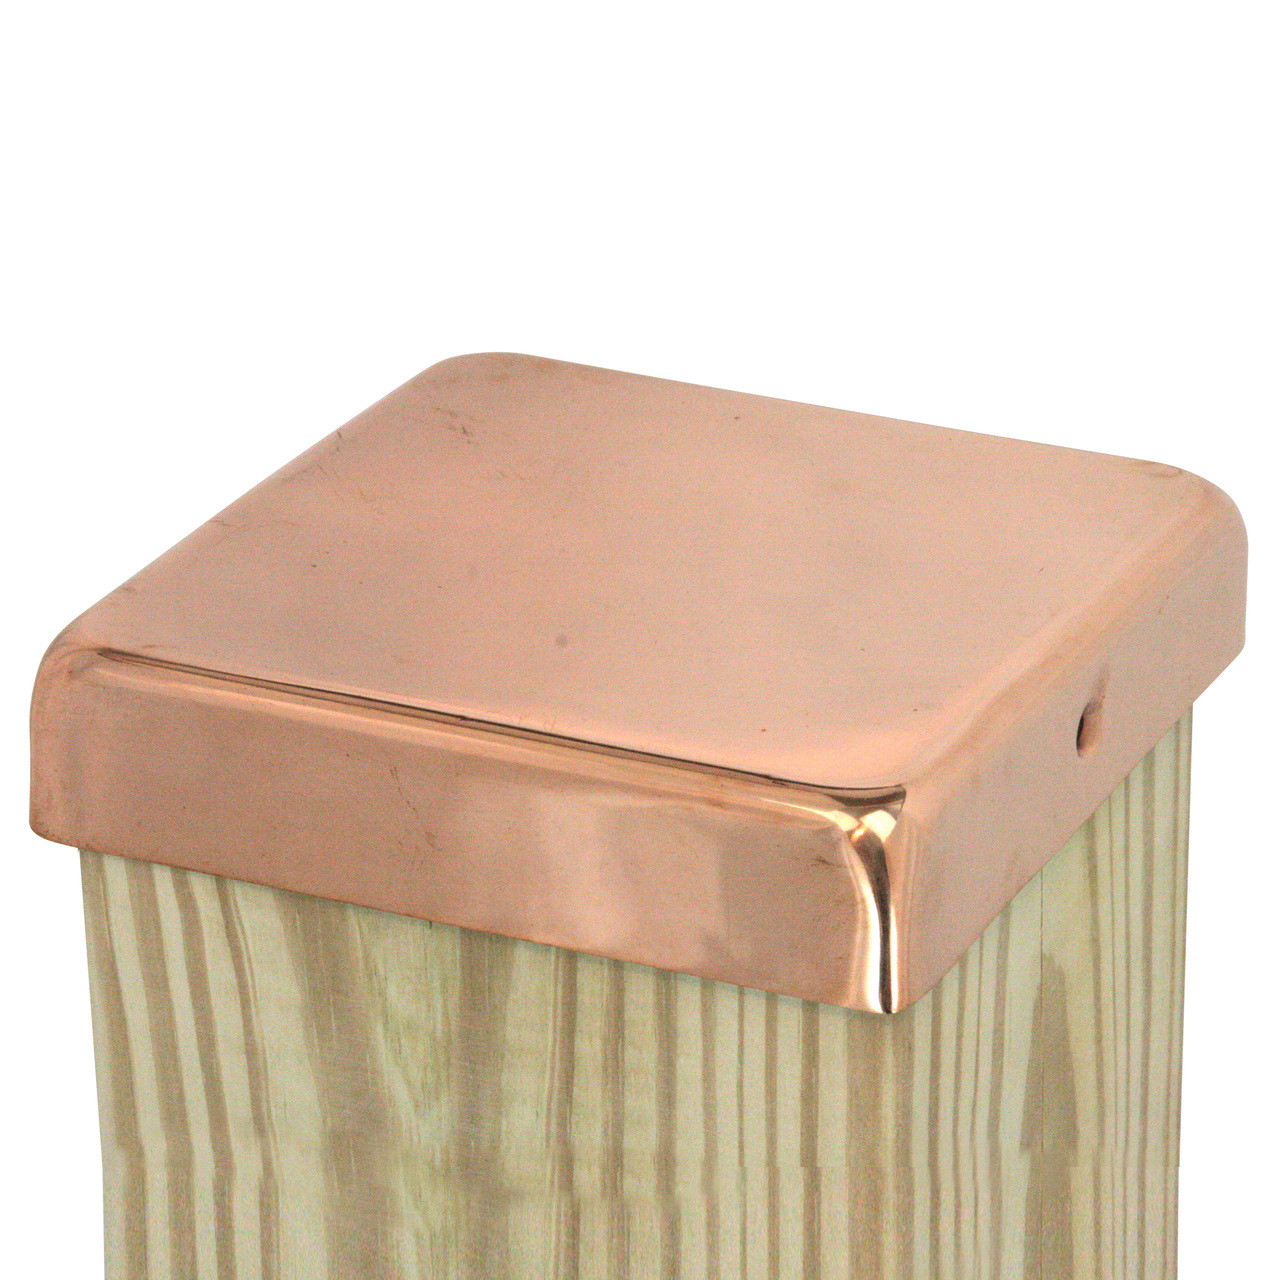 0cd90fccad1b2 100% Copper Flat Top Post Caps sit directly on top of your fence or deck